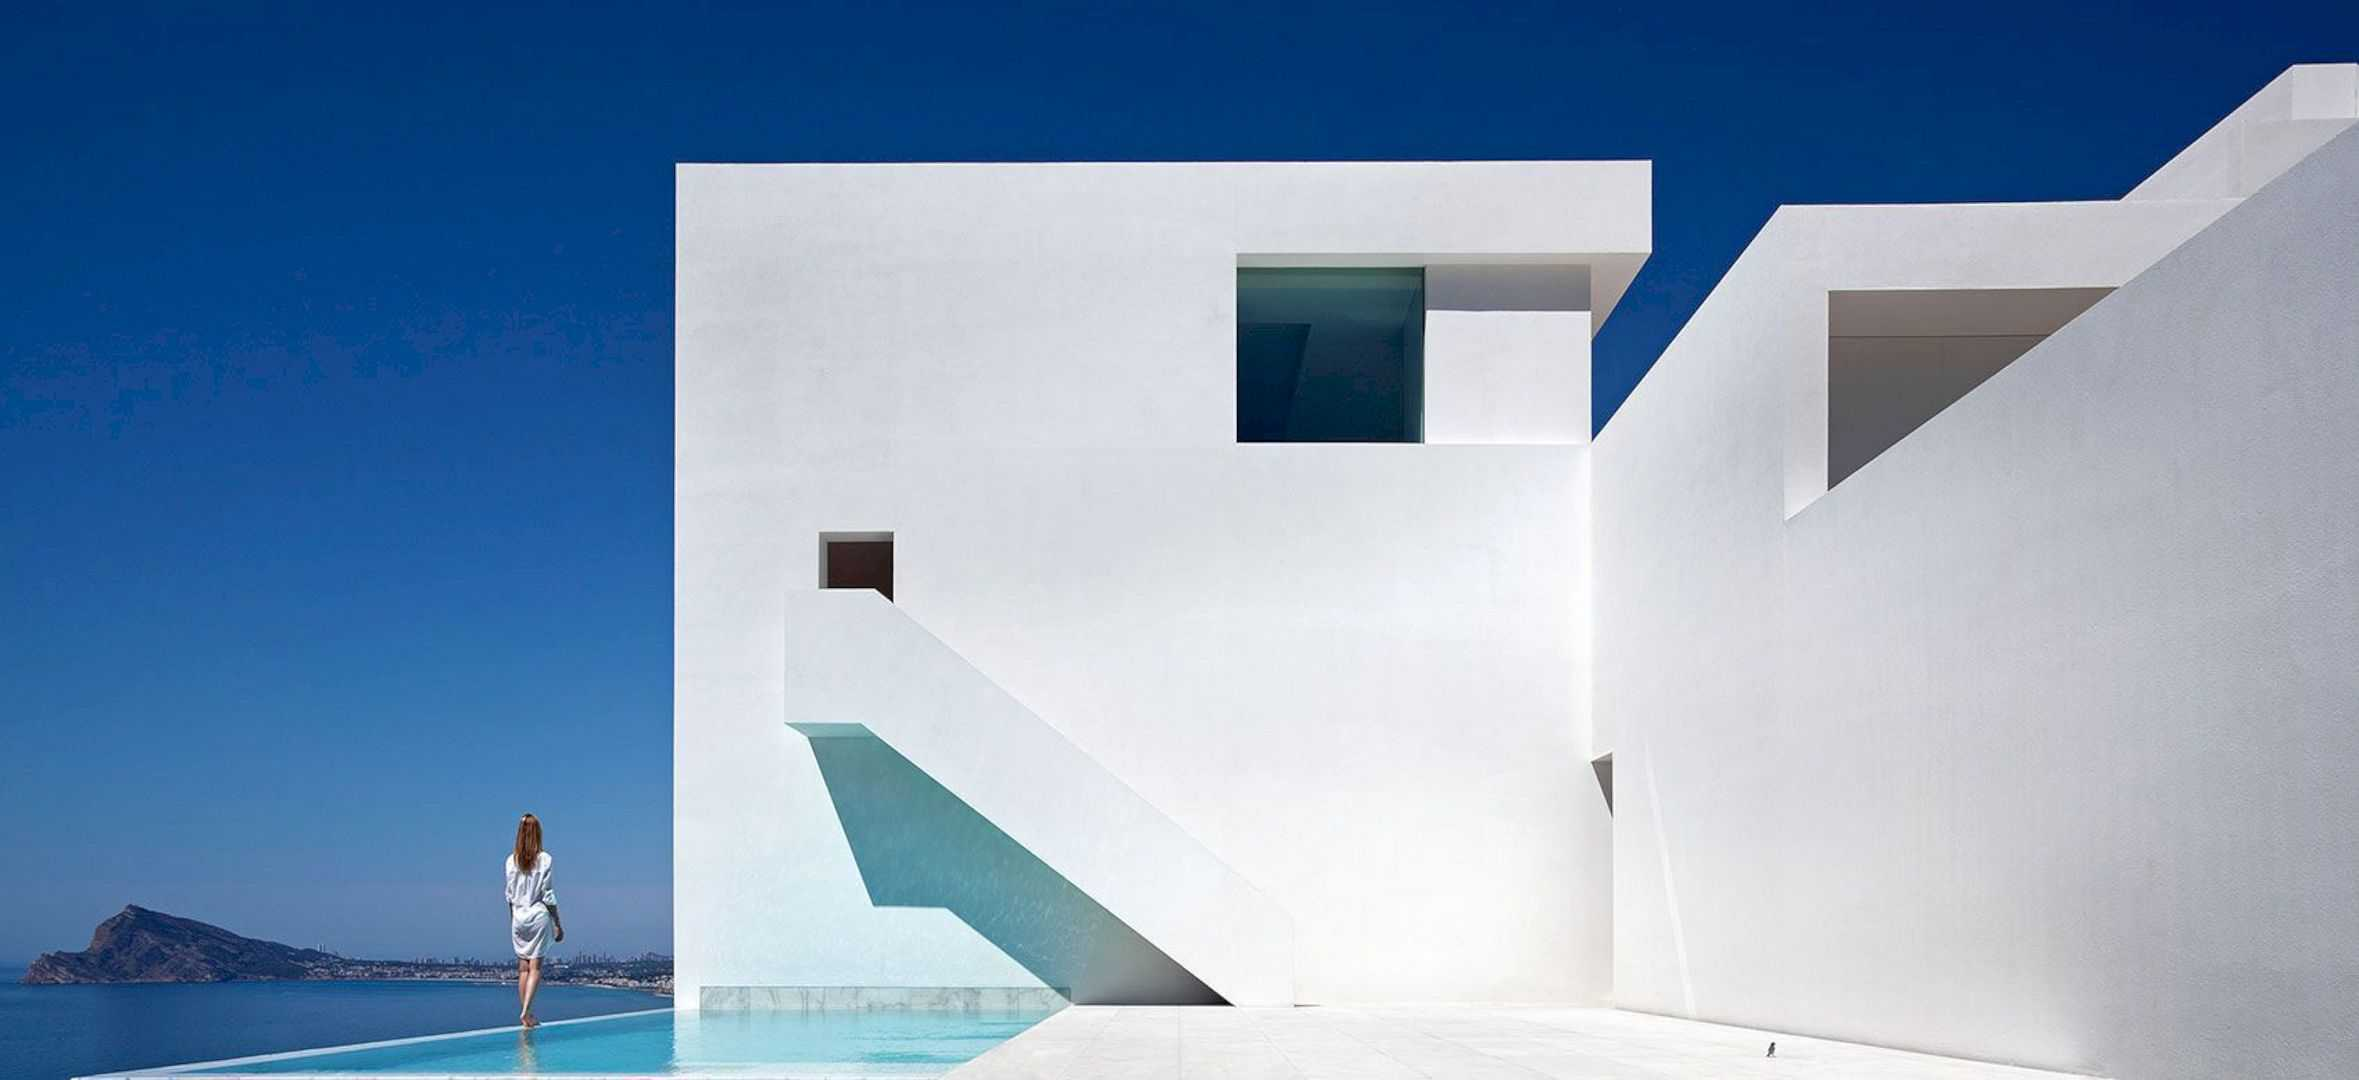 HOUSE ON THE CLIFF 2